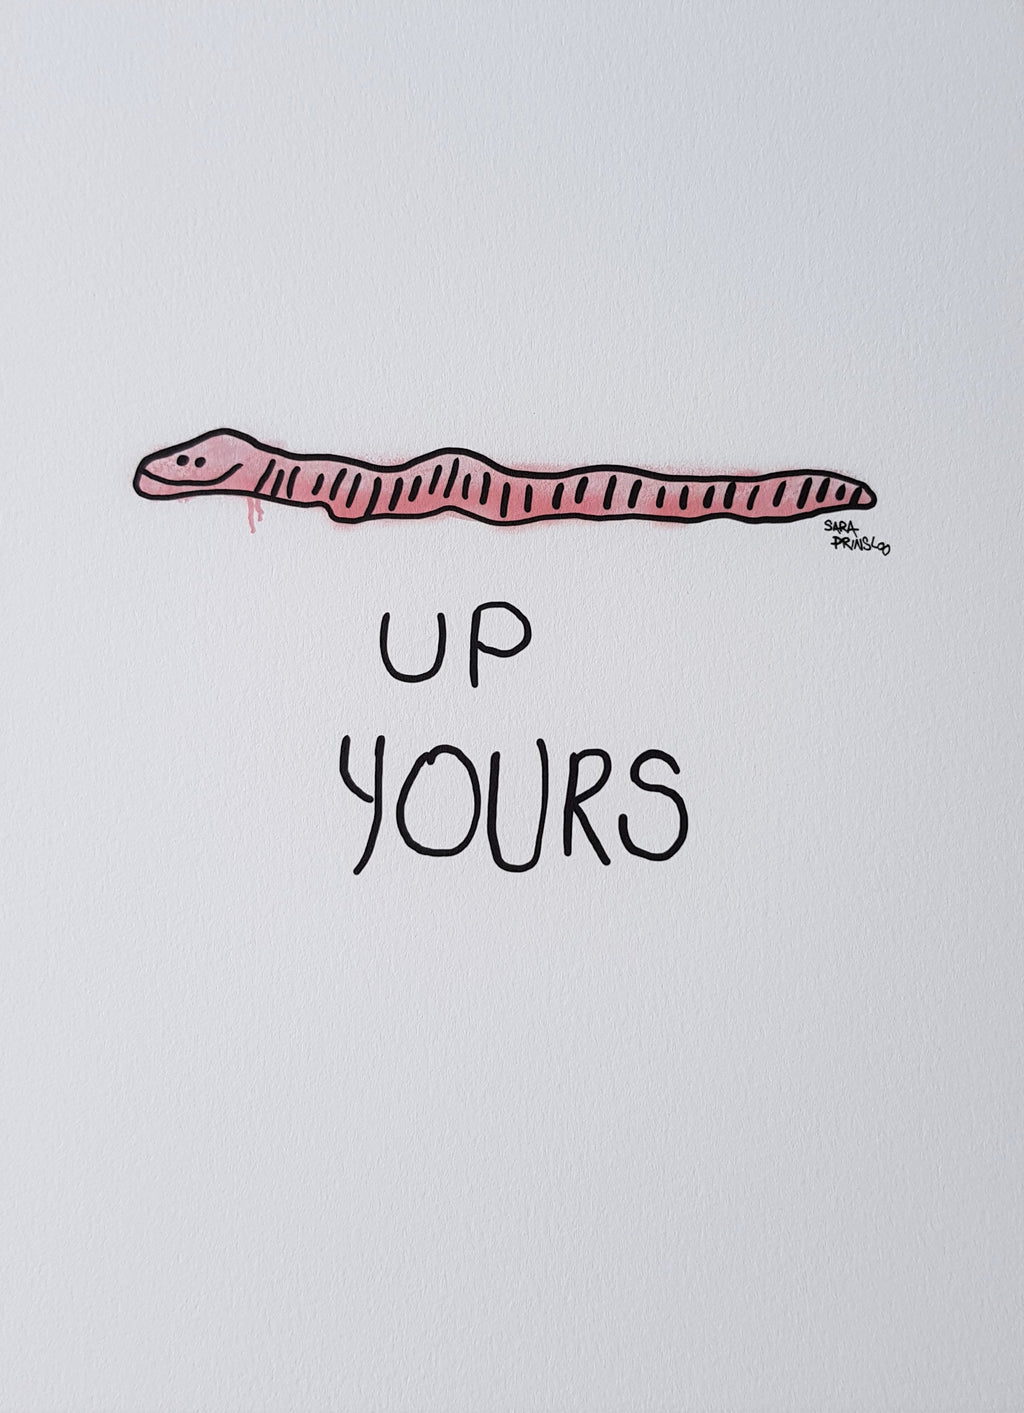 UP YOURS WORM PRINT